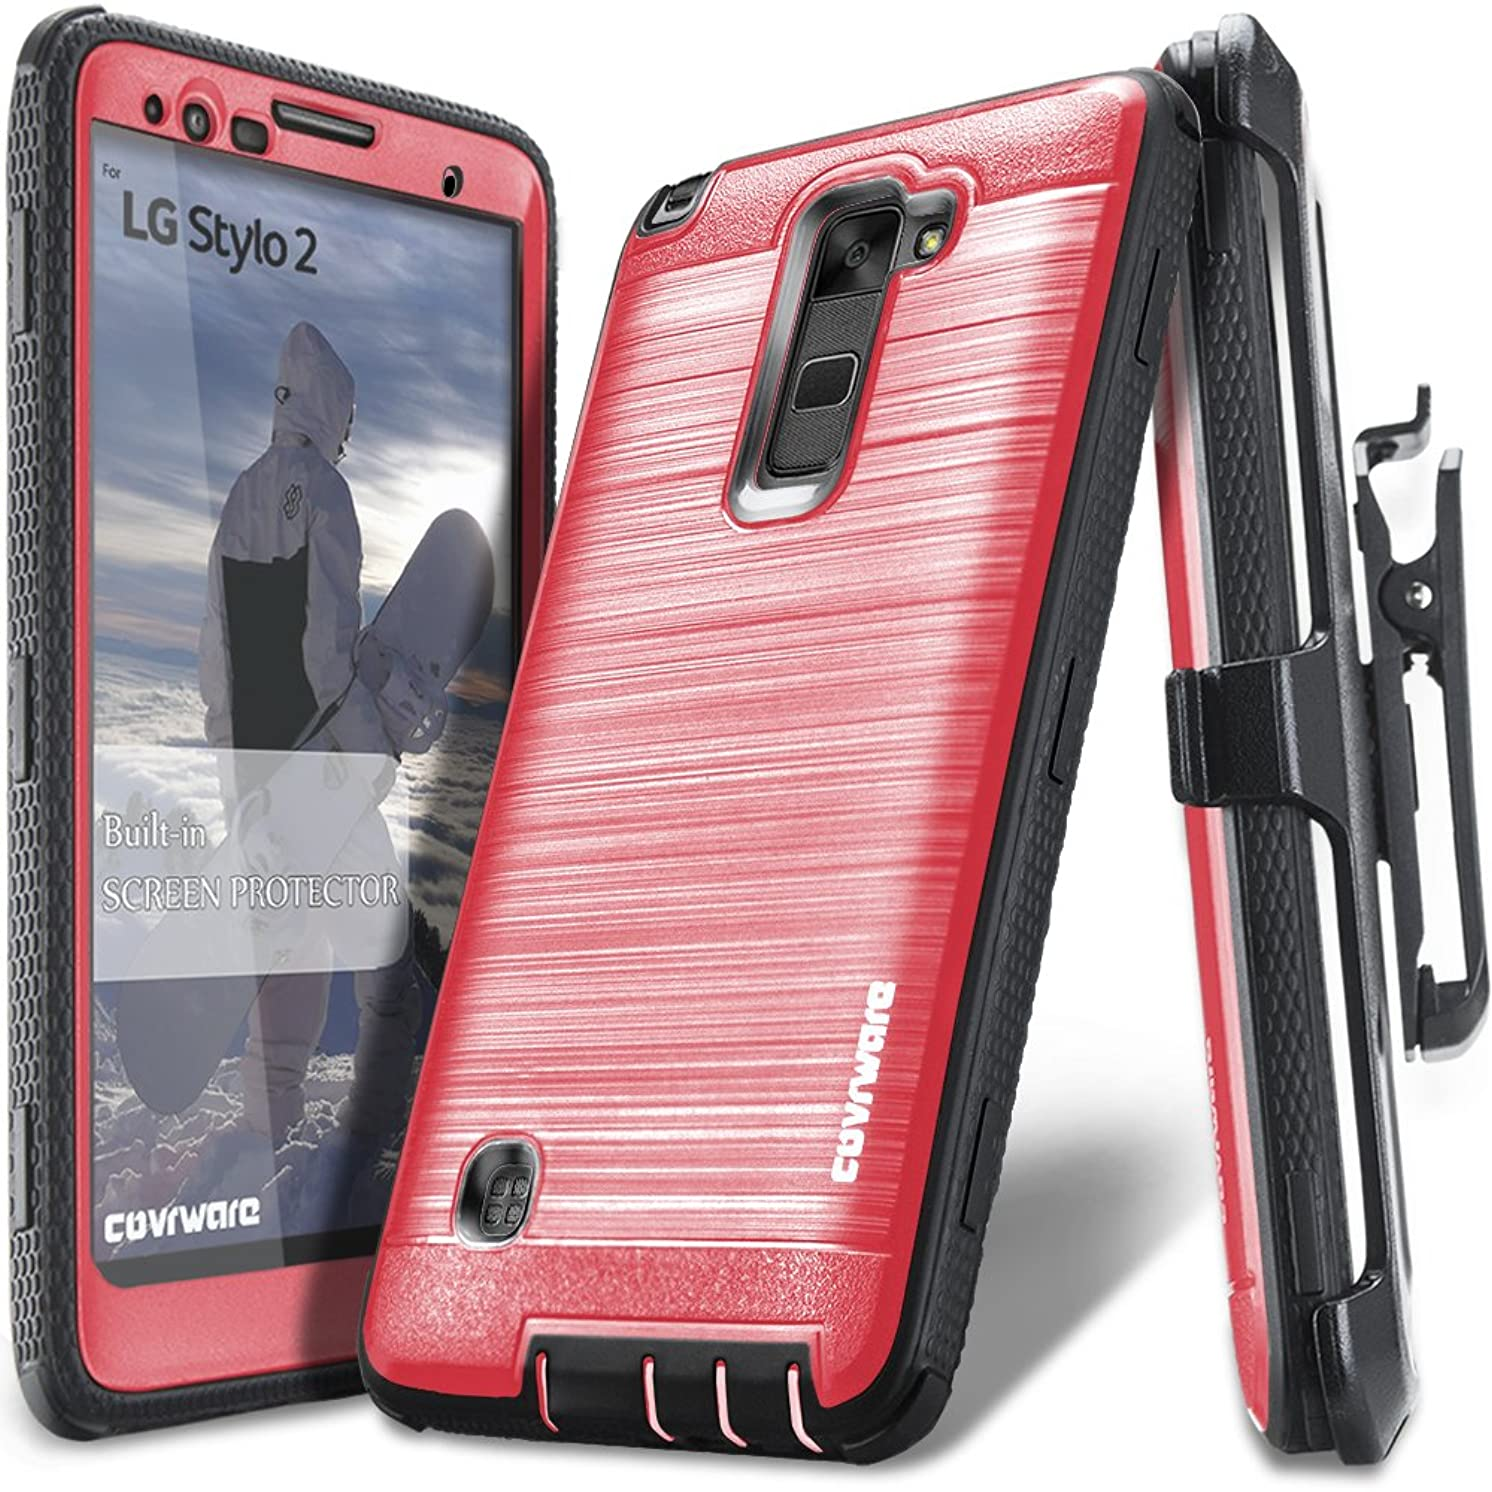 LG Stylo 2 /LG Stylo 2 Plus/LG Stylo 2 V, COVRWARE [Iron Tank] Built-in [Screen Protector] Heavy Duty Full-Body Rugged Holster Armor [Brushed Metal Texture] Case [Belt Clip][Kickstand], Red